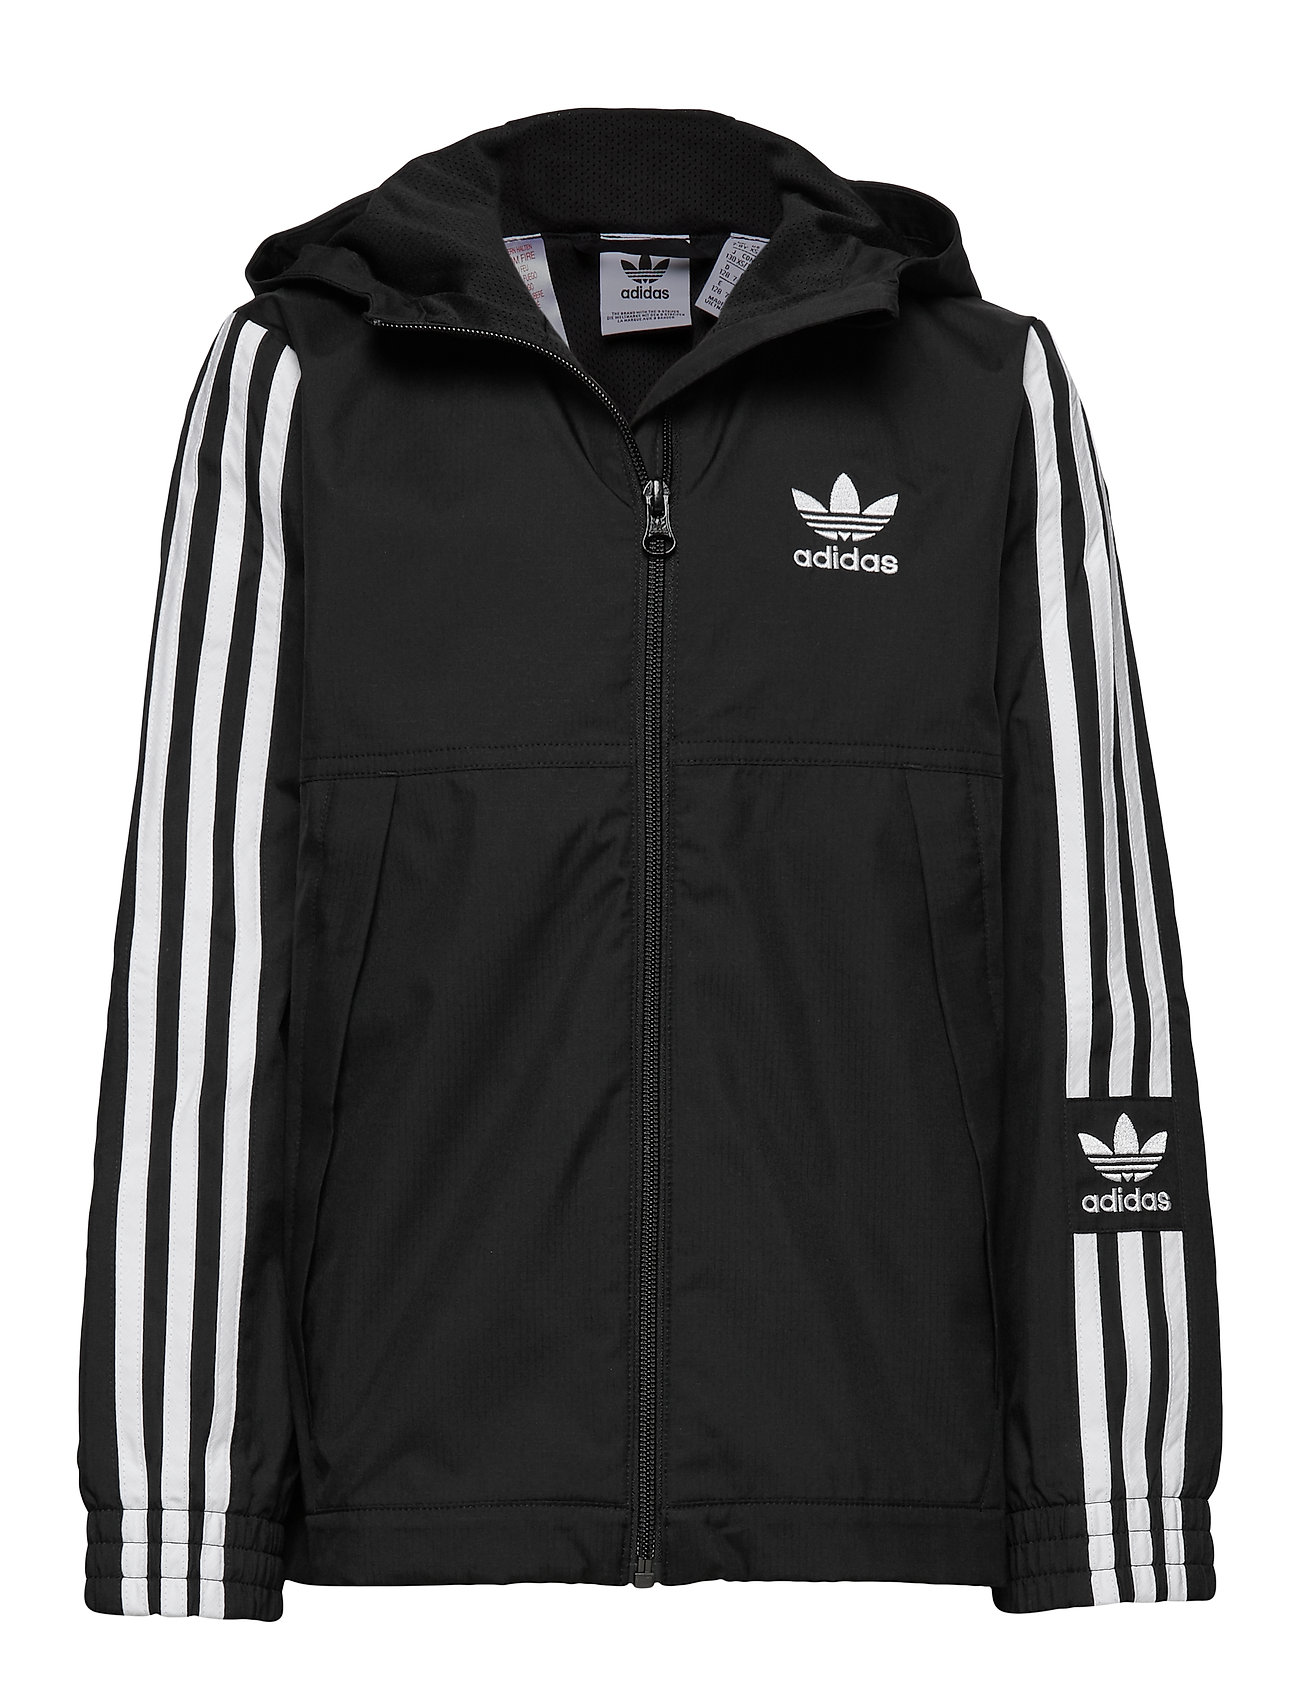 adidas Originals LOCK UP WB - BLACK/WHITE